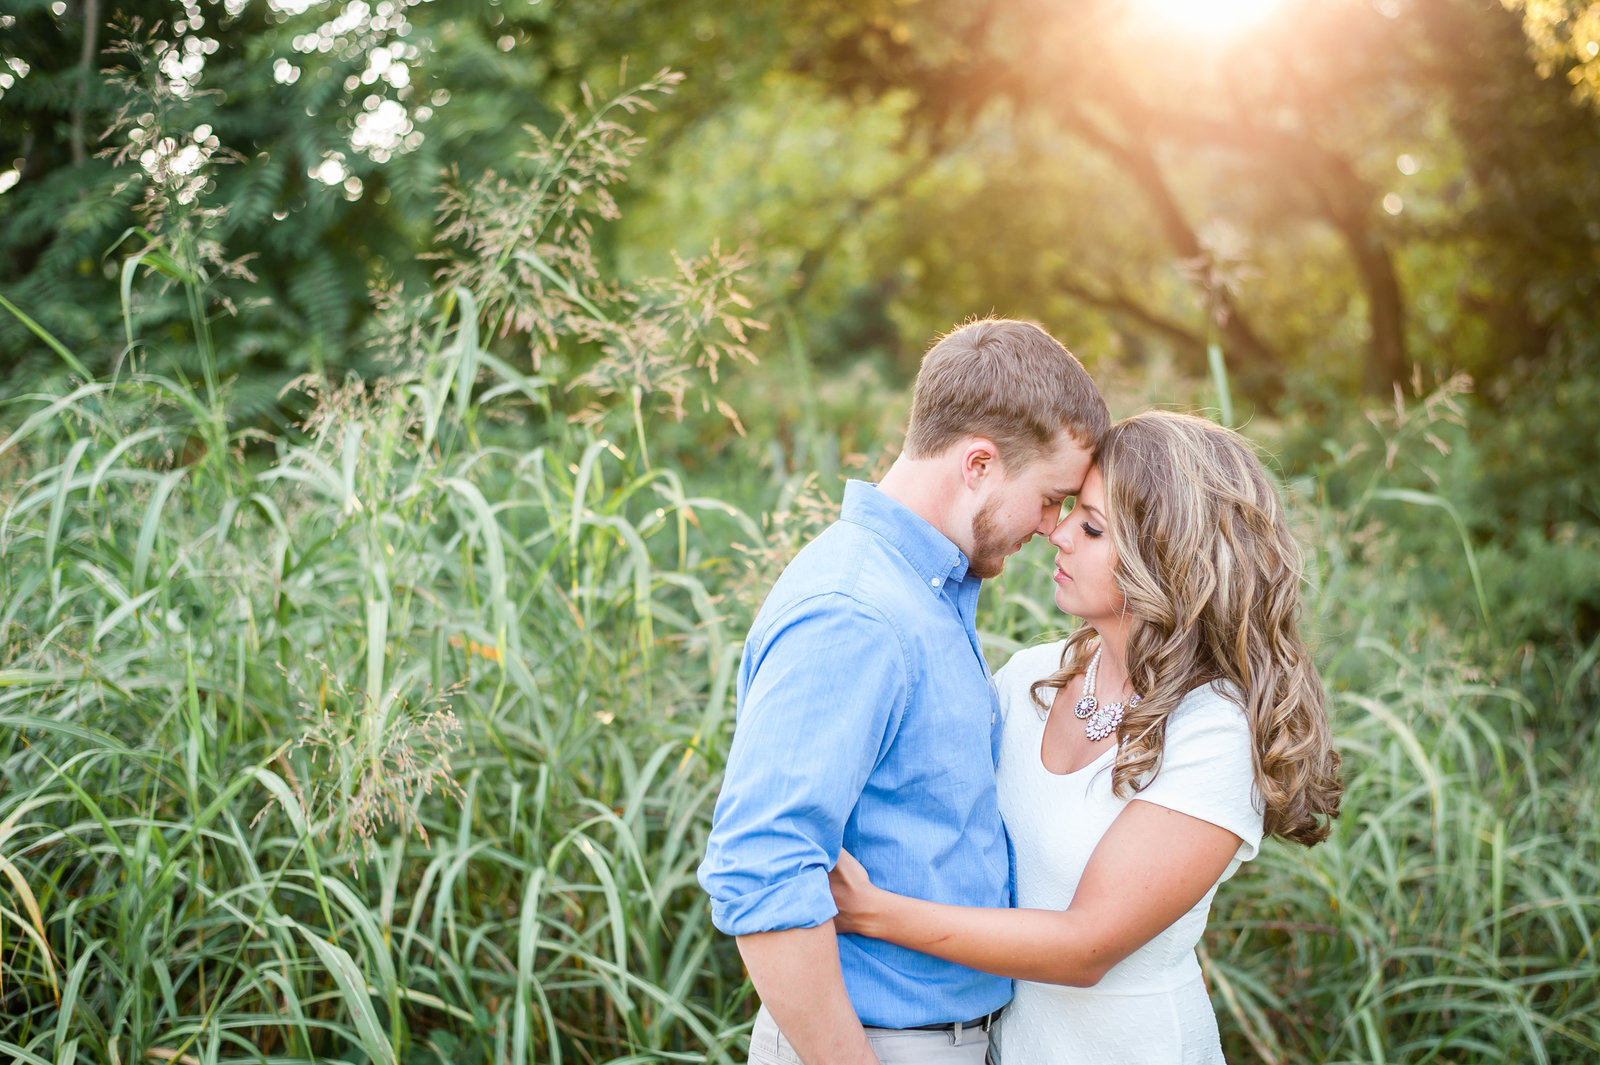 Ashley-and-Jake-Richmond-Engagement-Photos-Melissa-Desjardins-Photography-1